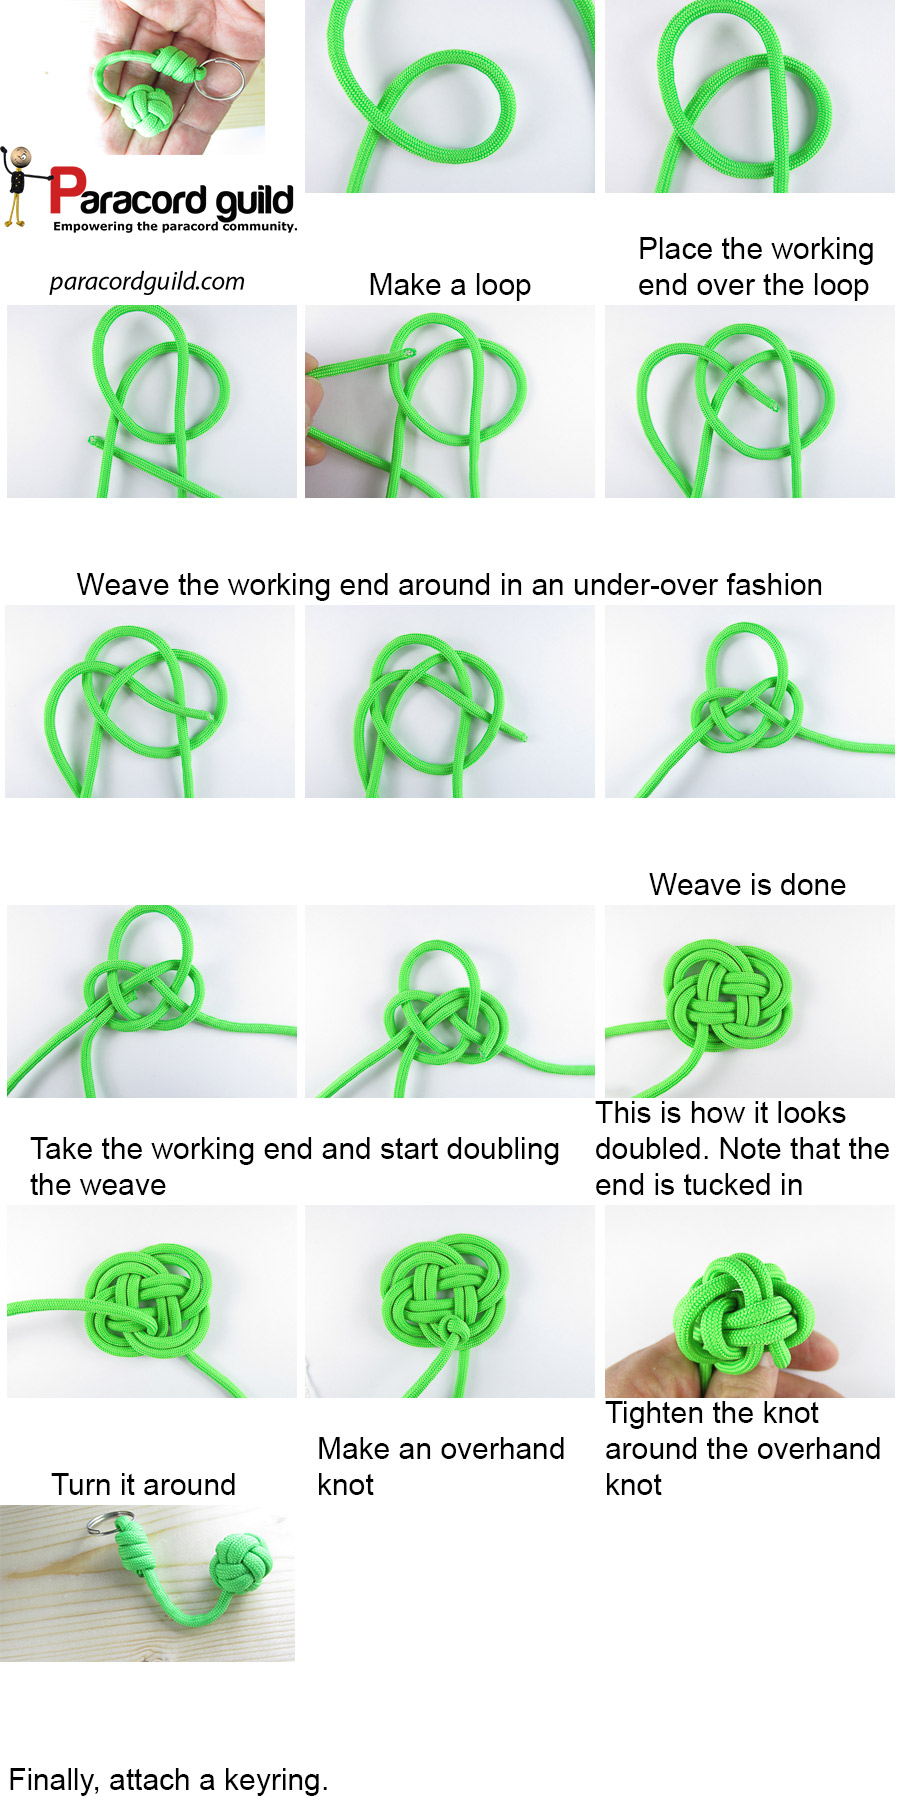 How To Tie A Paracord Keychain Paracord Guild In 2020 Paracord Bracelet Tutorial Paracord Tutorial Paracord Keychain